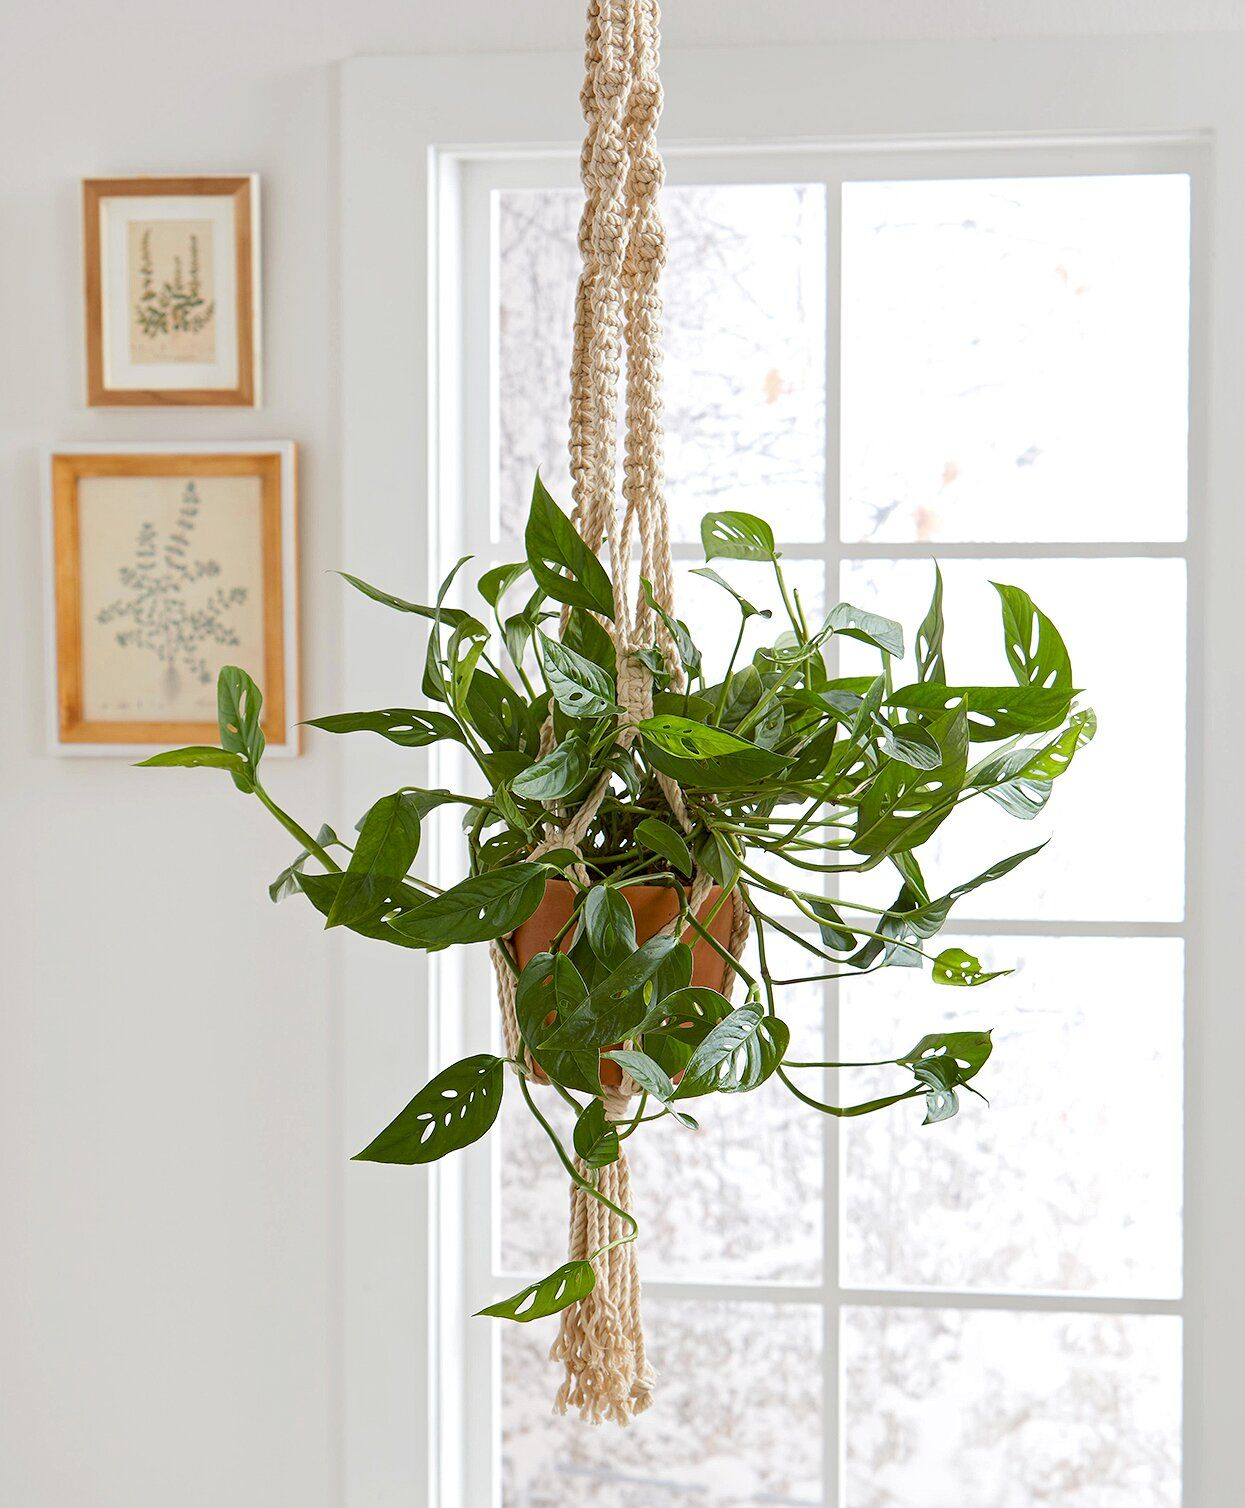 23 of Our Favorite LowLight Houseplants Hanging plants